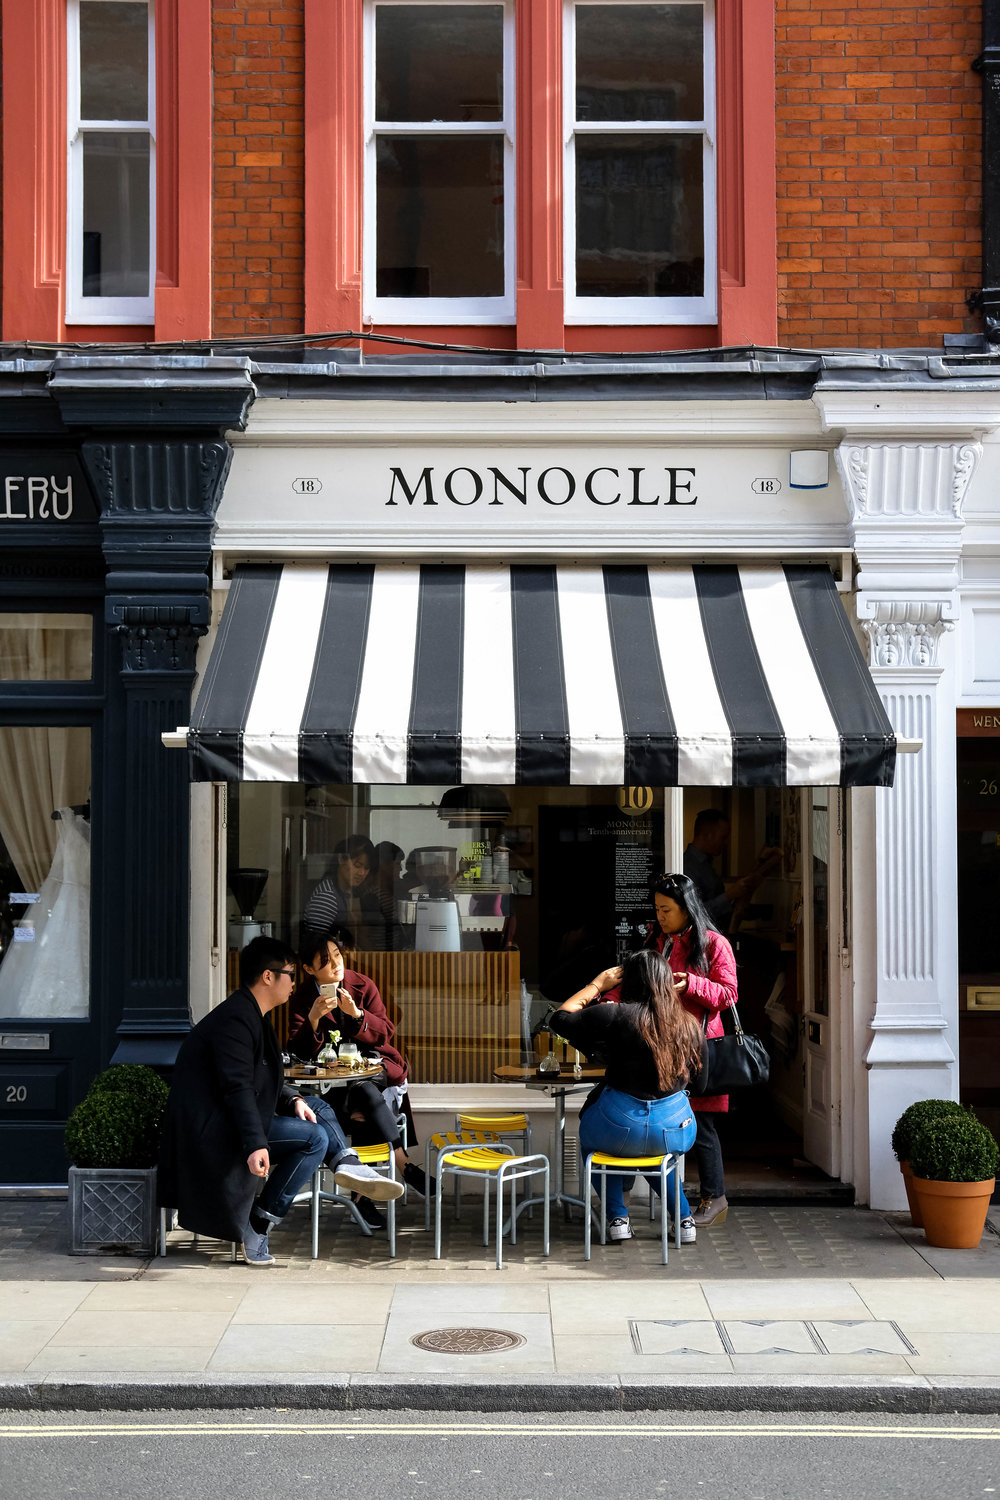 "<p style=""font-family:brandon-grotesque;font-weight:500; font-size:11px; text-center:left; color:light grey;letter-spacing: 1px"">MARCH 12, 2017 • MONOCLE • 📍 London, UK</p>"